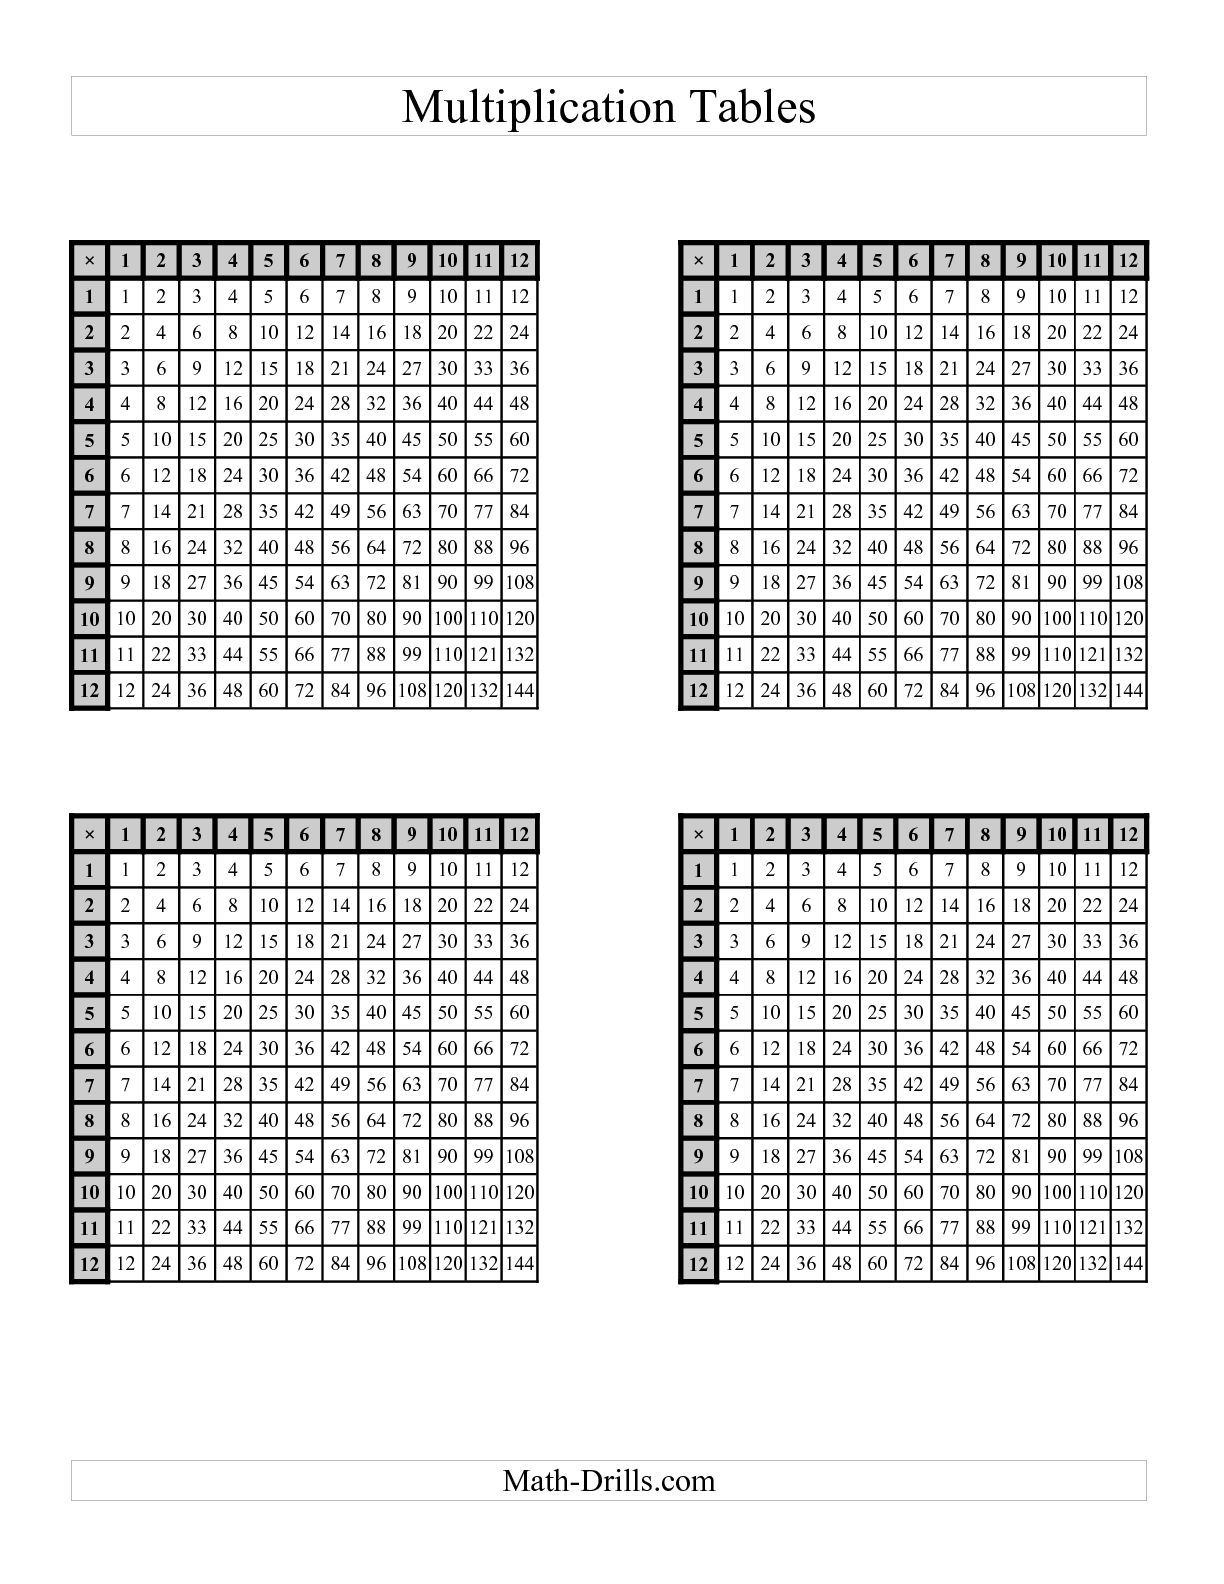 Multiplication Tables To 144 Four Per Page D Multiplication Worksheet Multiplication Table Multiplication Math Charts [ 1584 x 1224 Pixel ]